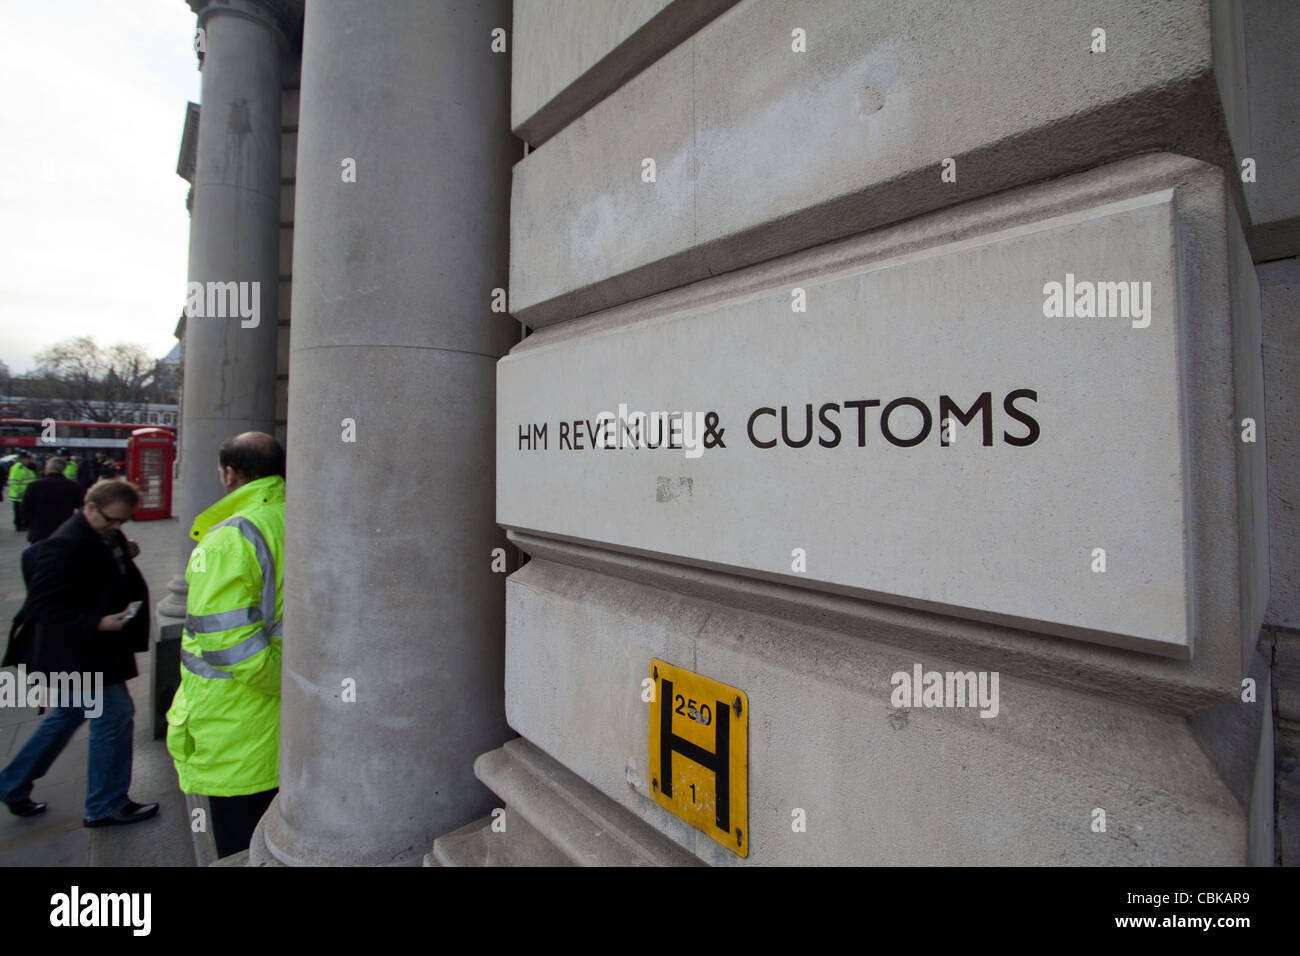 H M Revenue and customs, Her Majesty's Revenue and Customs offices Whitehall, London - Stock Image